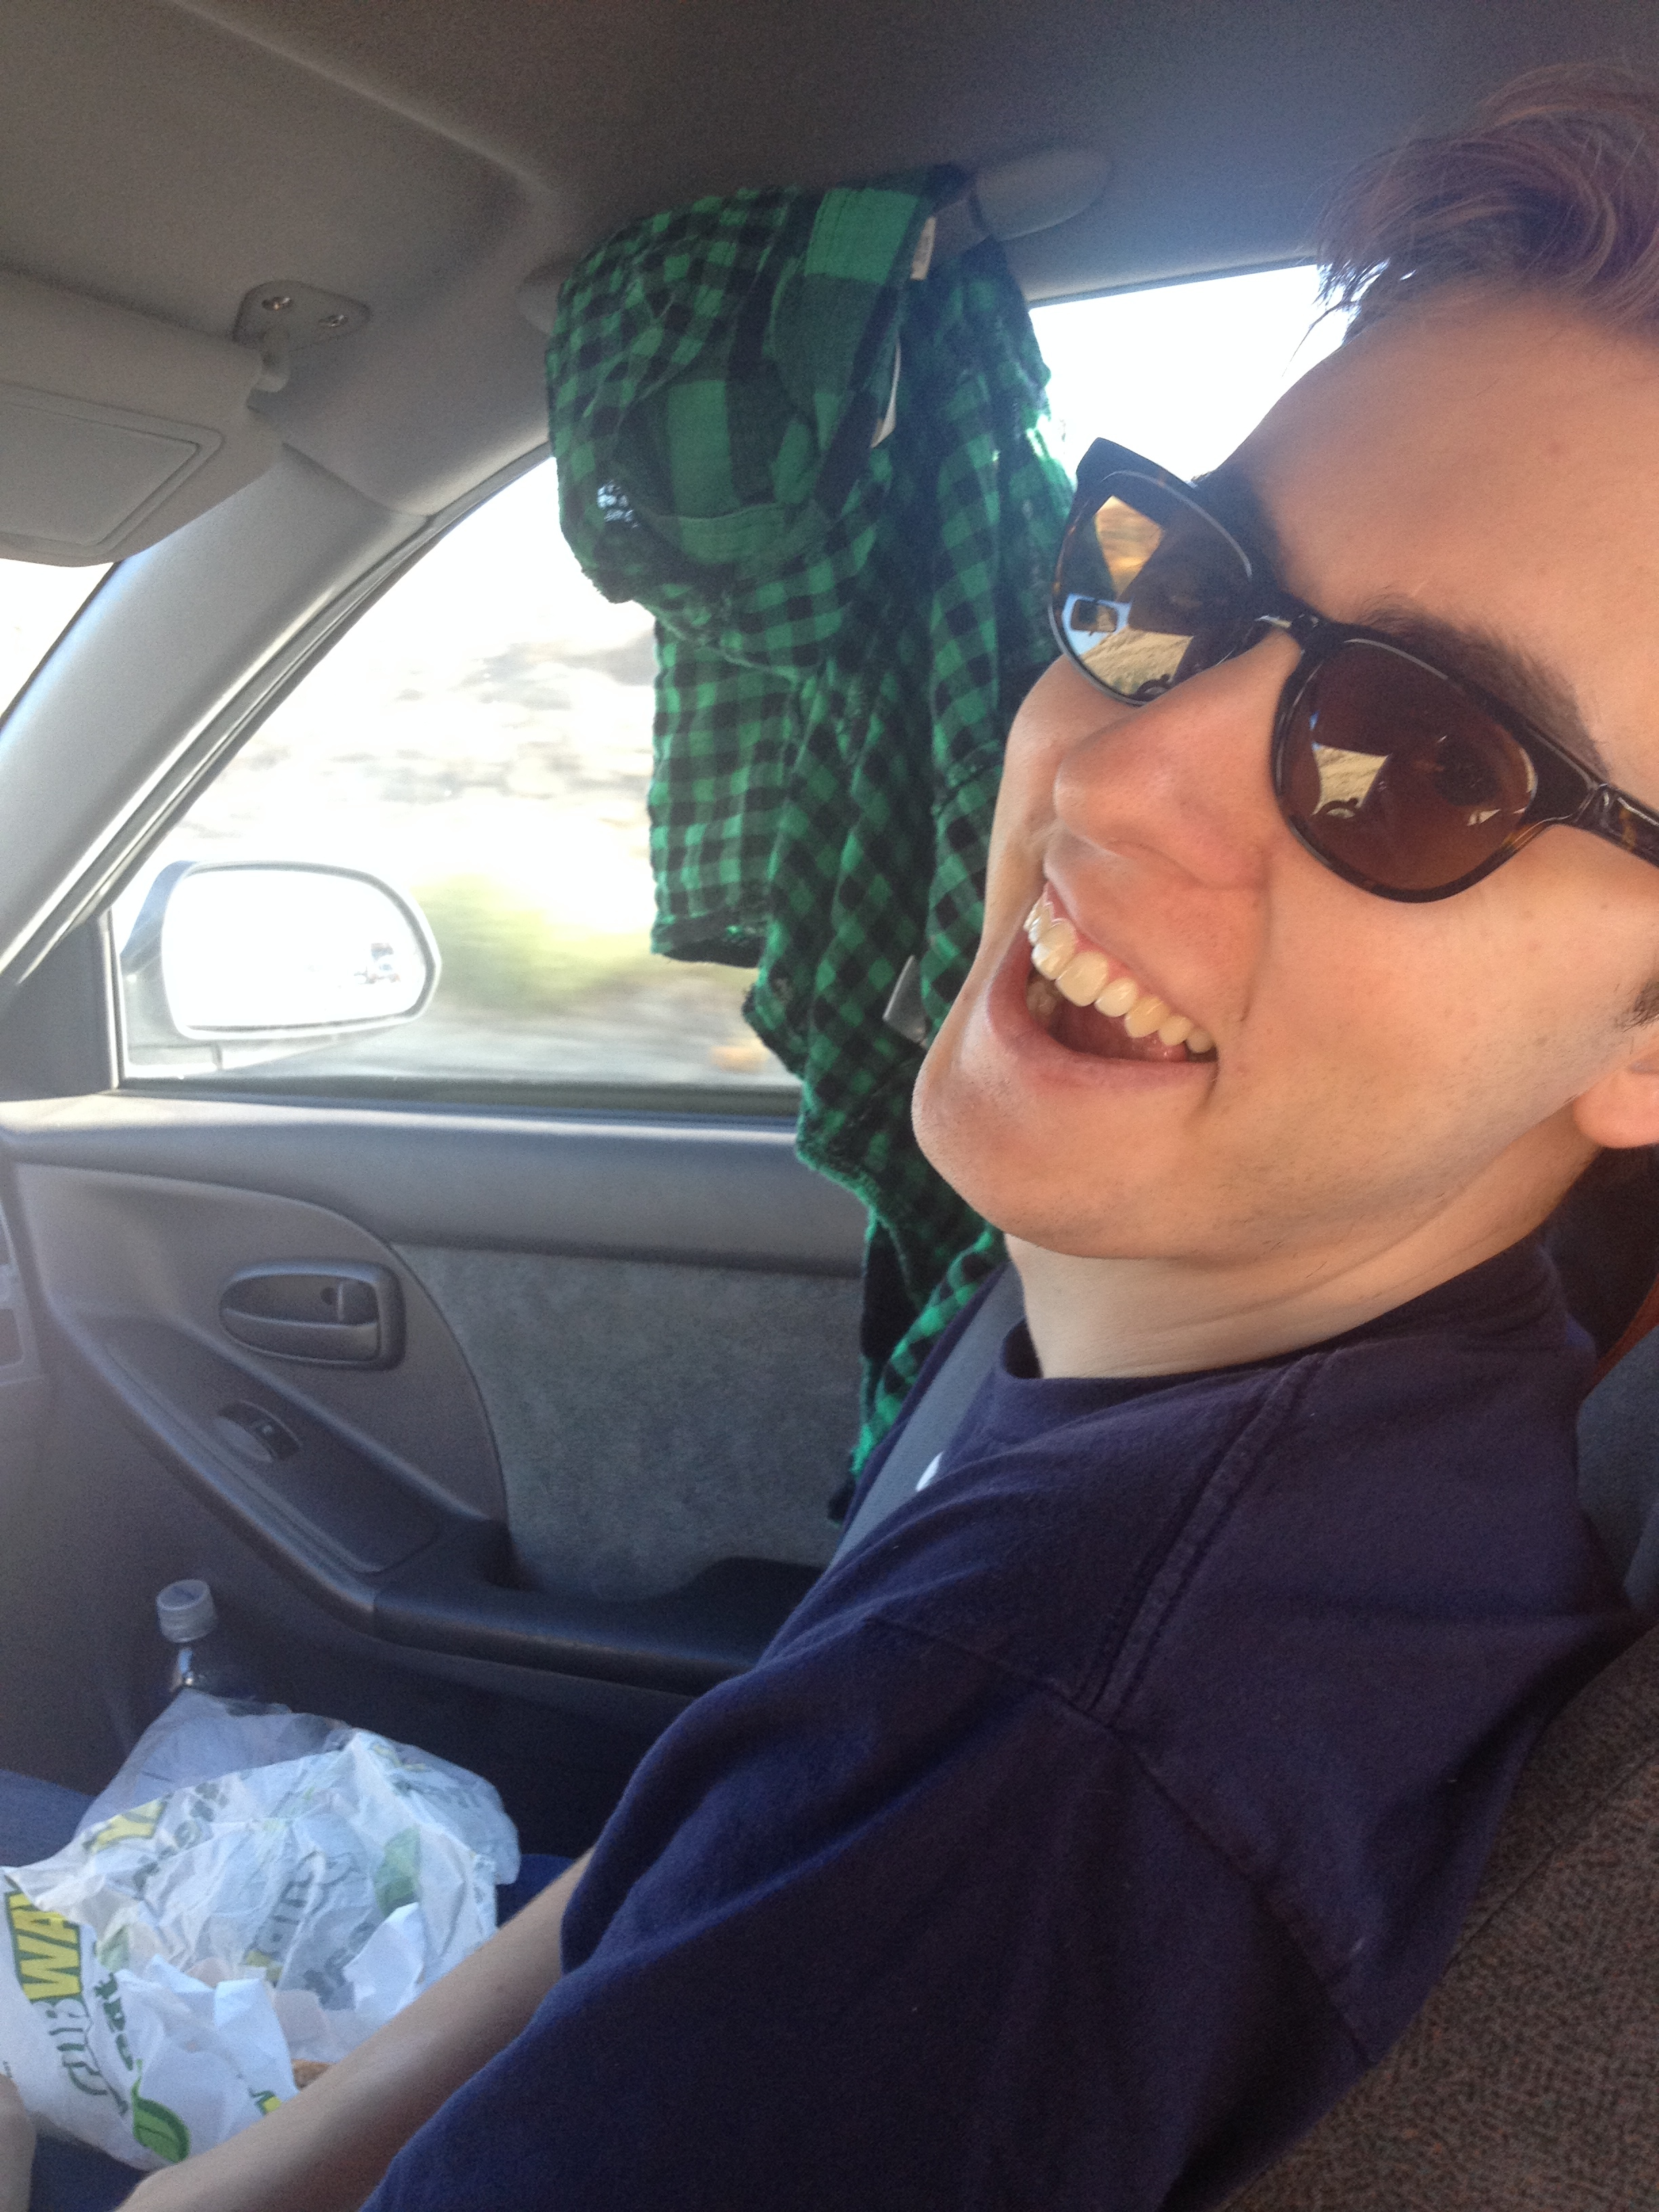 Colin enjoying the trip (and subway sandwich apparently)